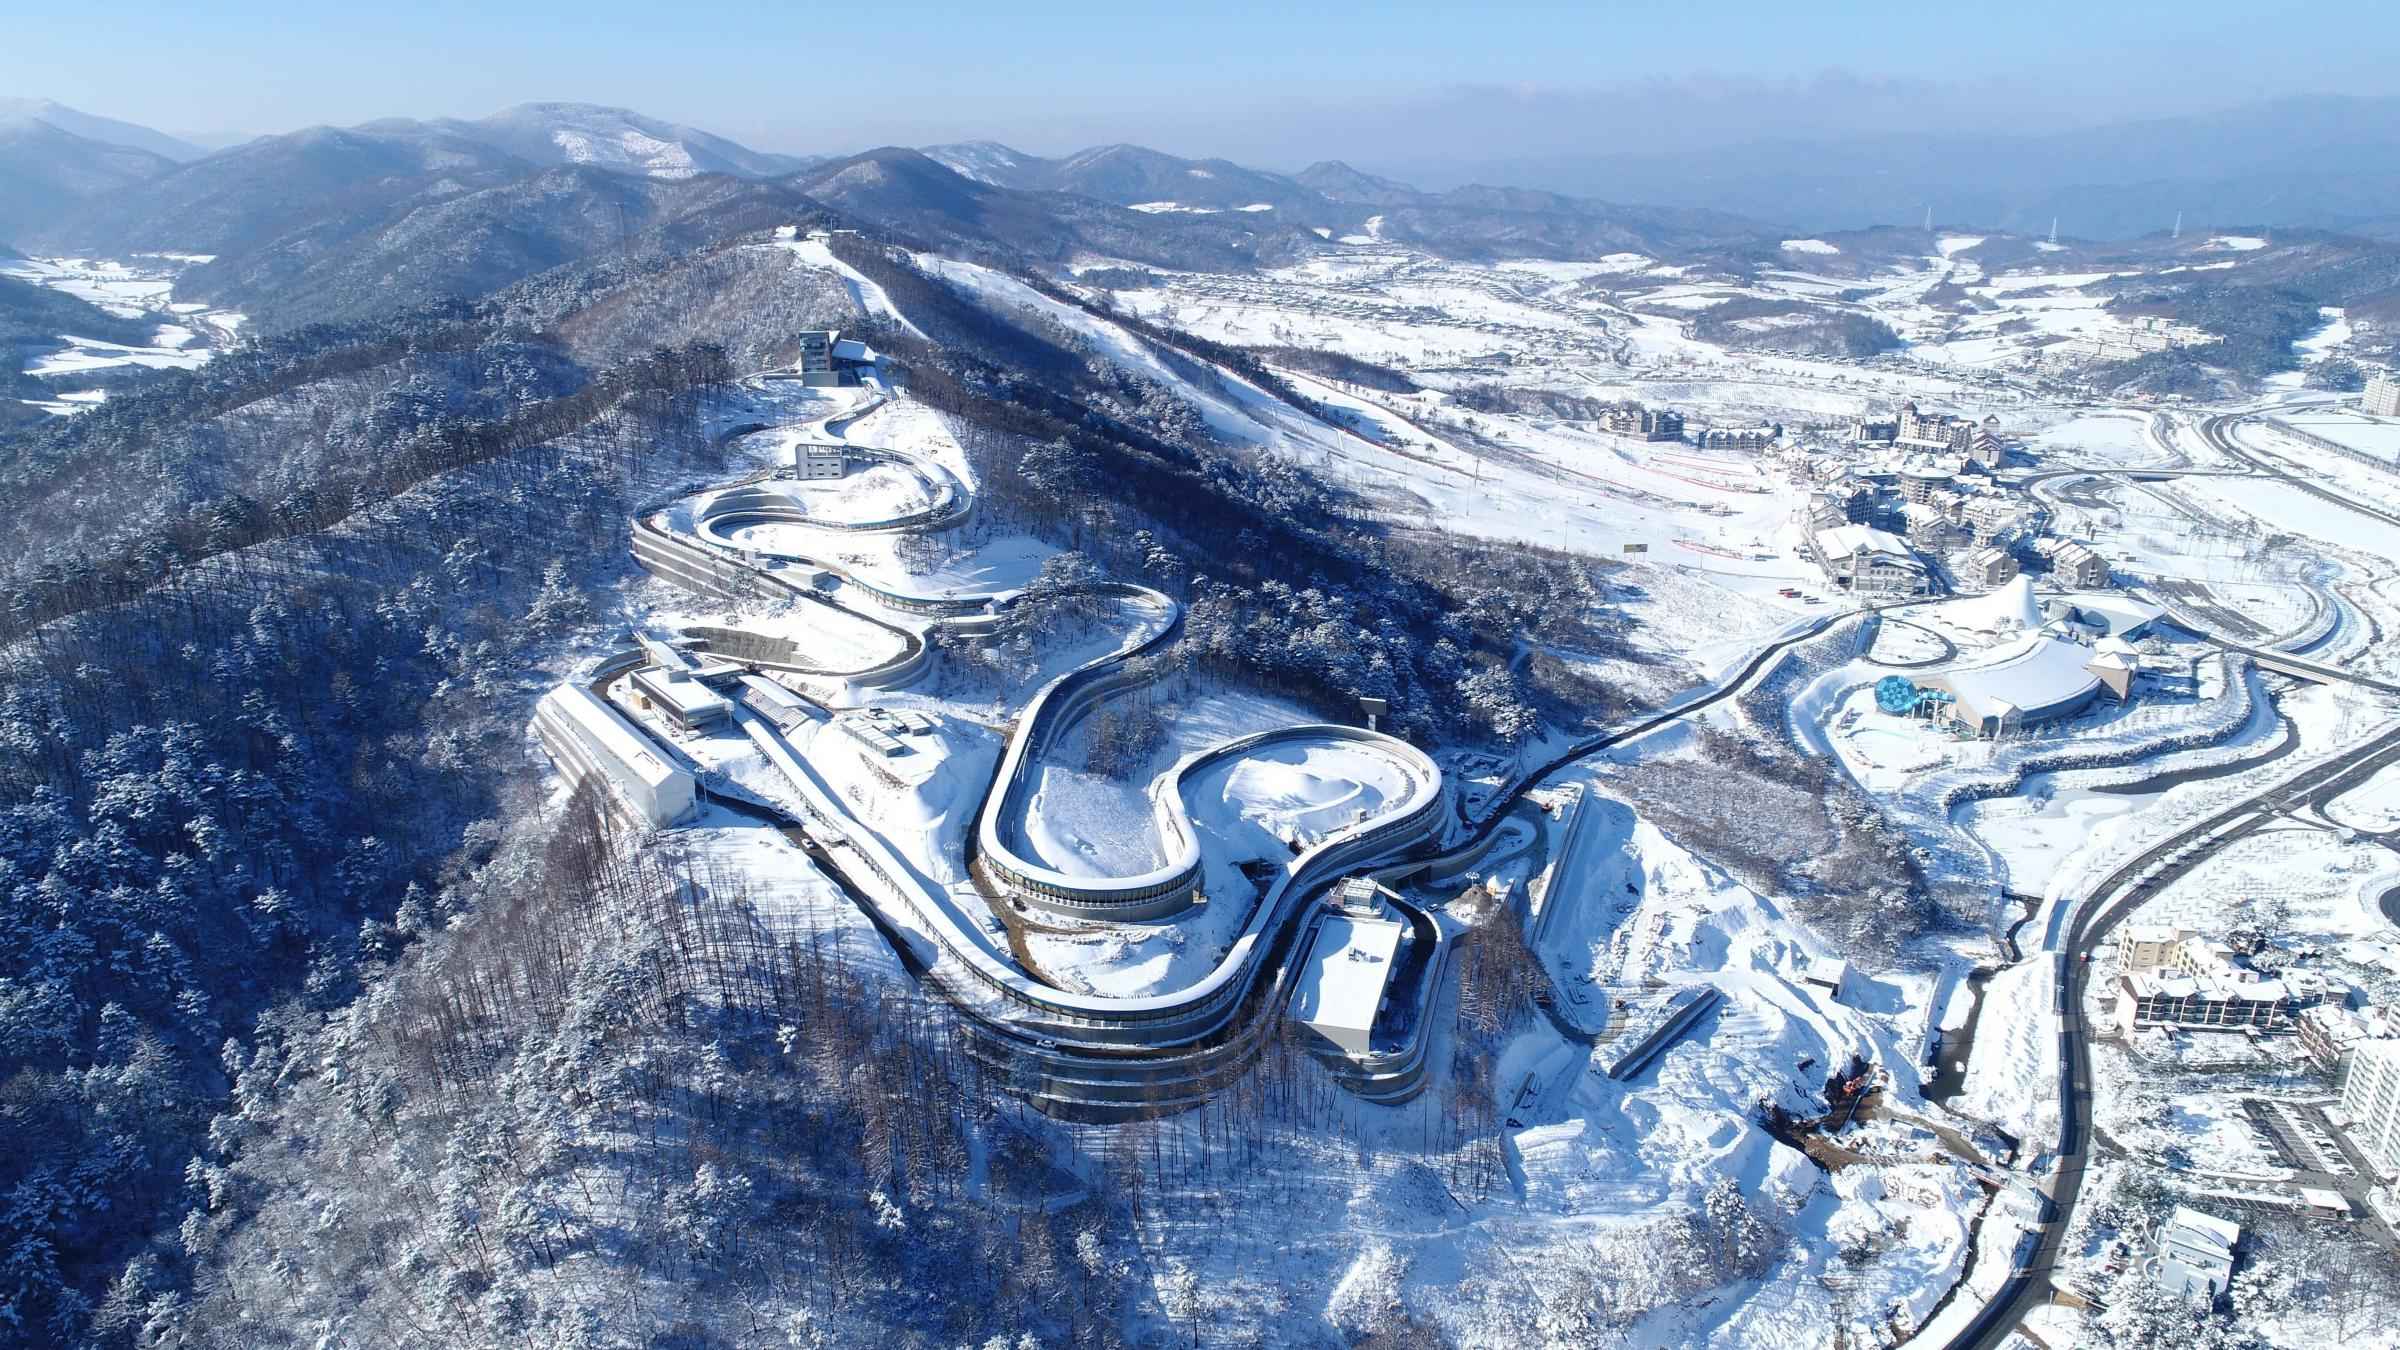 Winter Olympics in PyeongChang, day 11